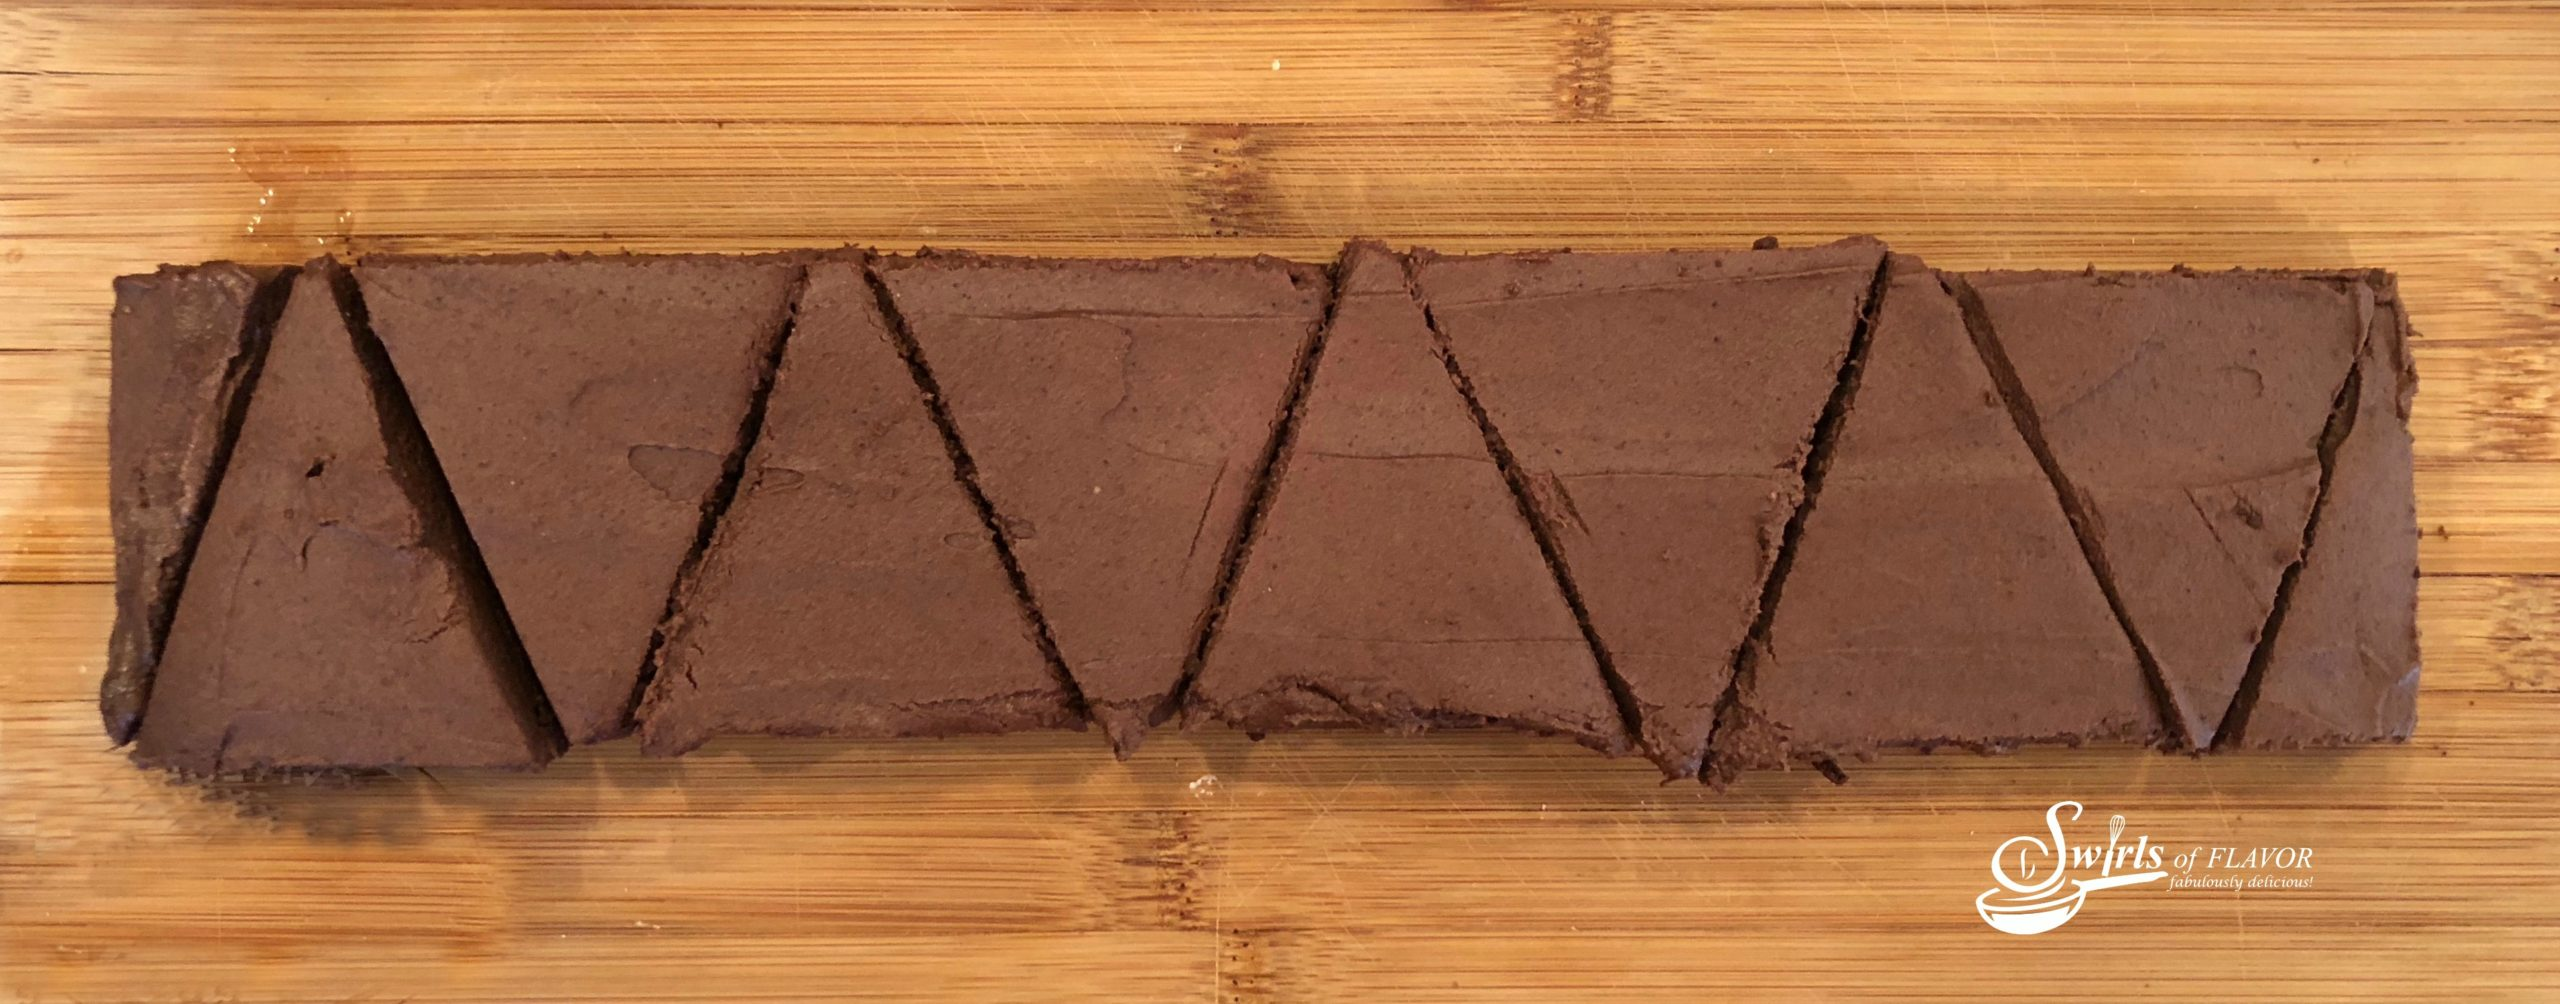 How to cut brownies into triangles for reindeer brownies